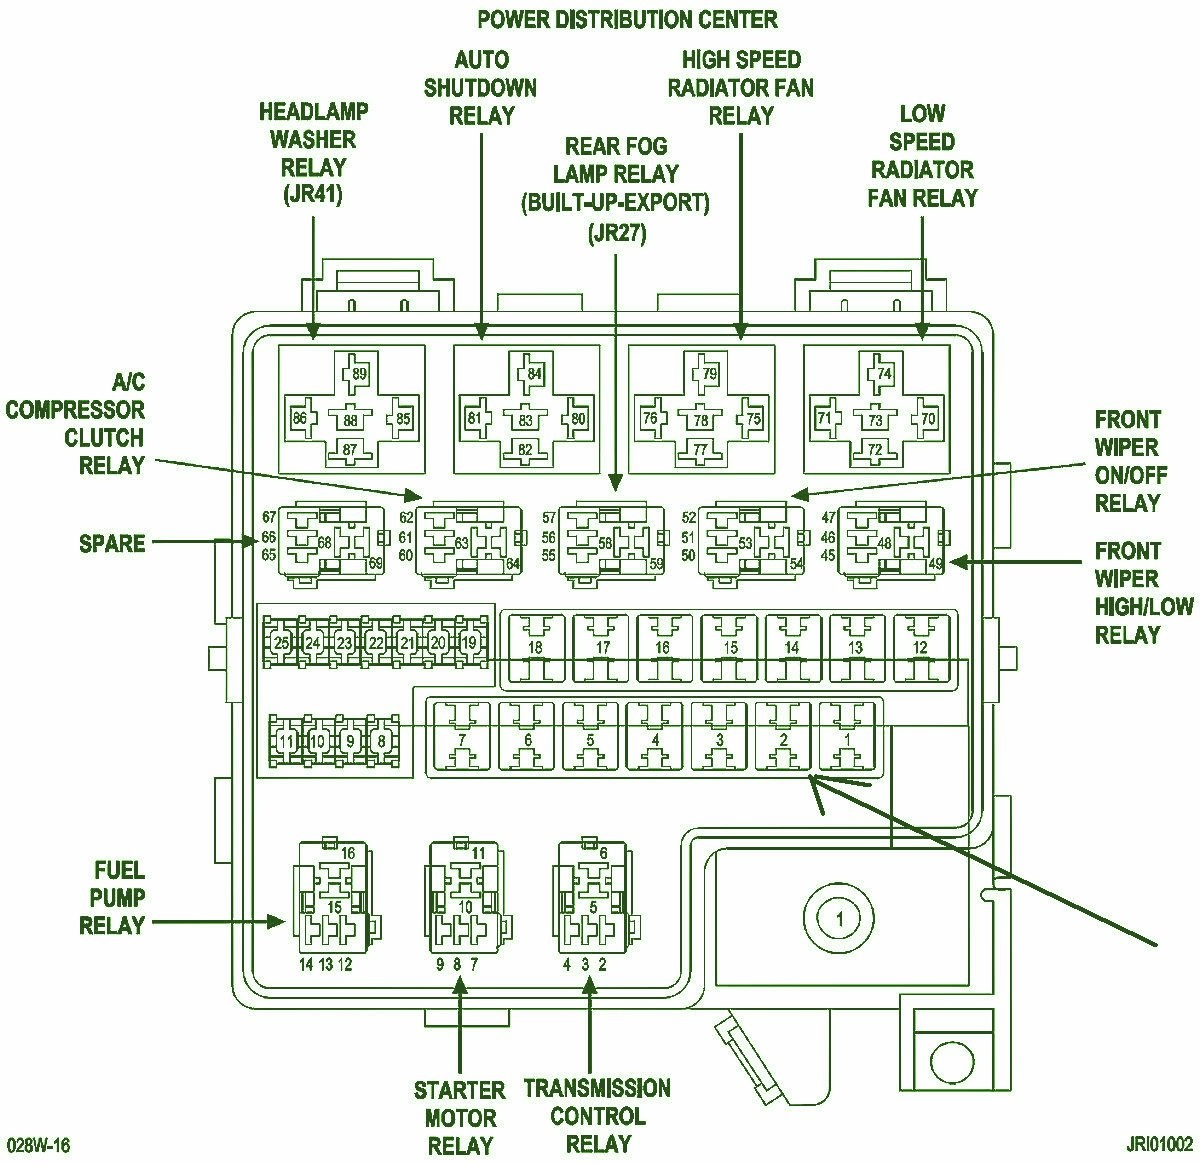 hight resolution of 2005 scion xb fuse diagram